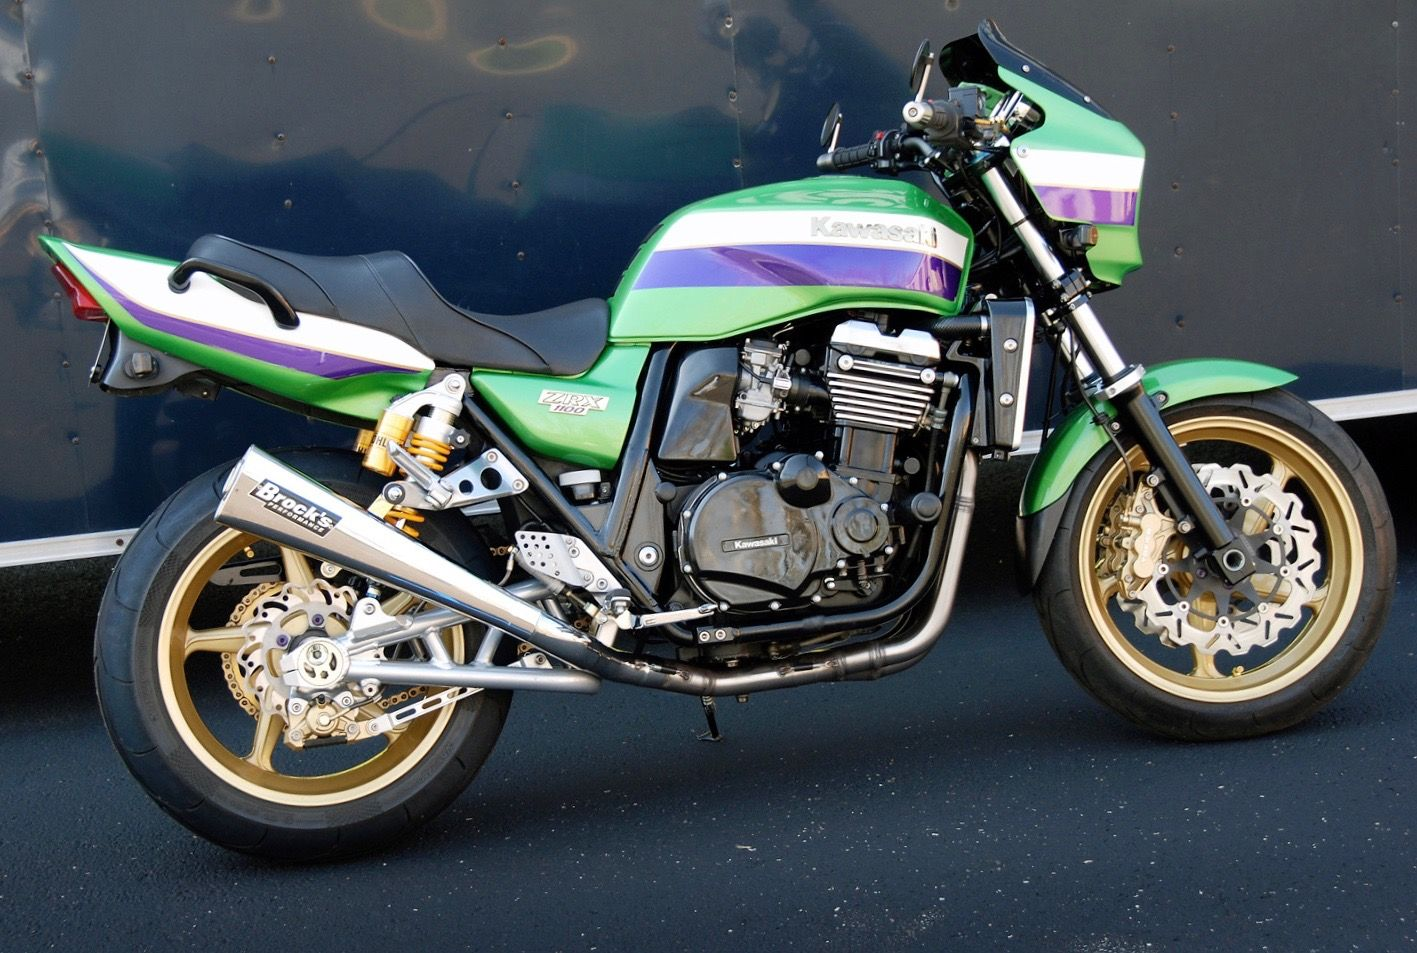 Kawasaki ZRX1100 in green - second Eddie Lawson Replica